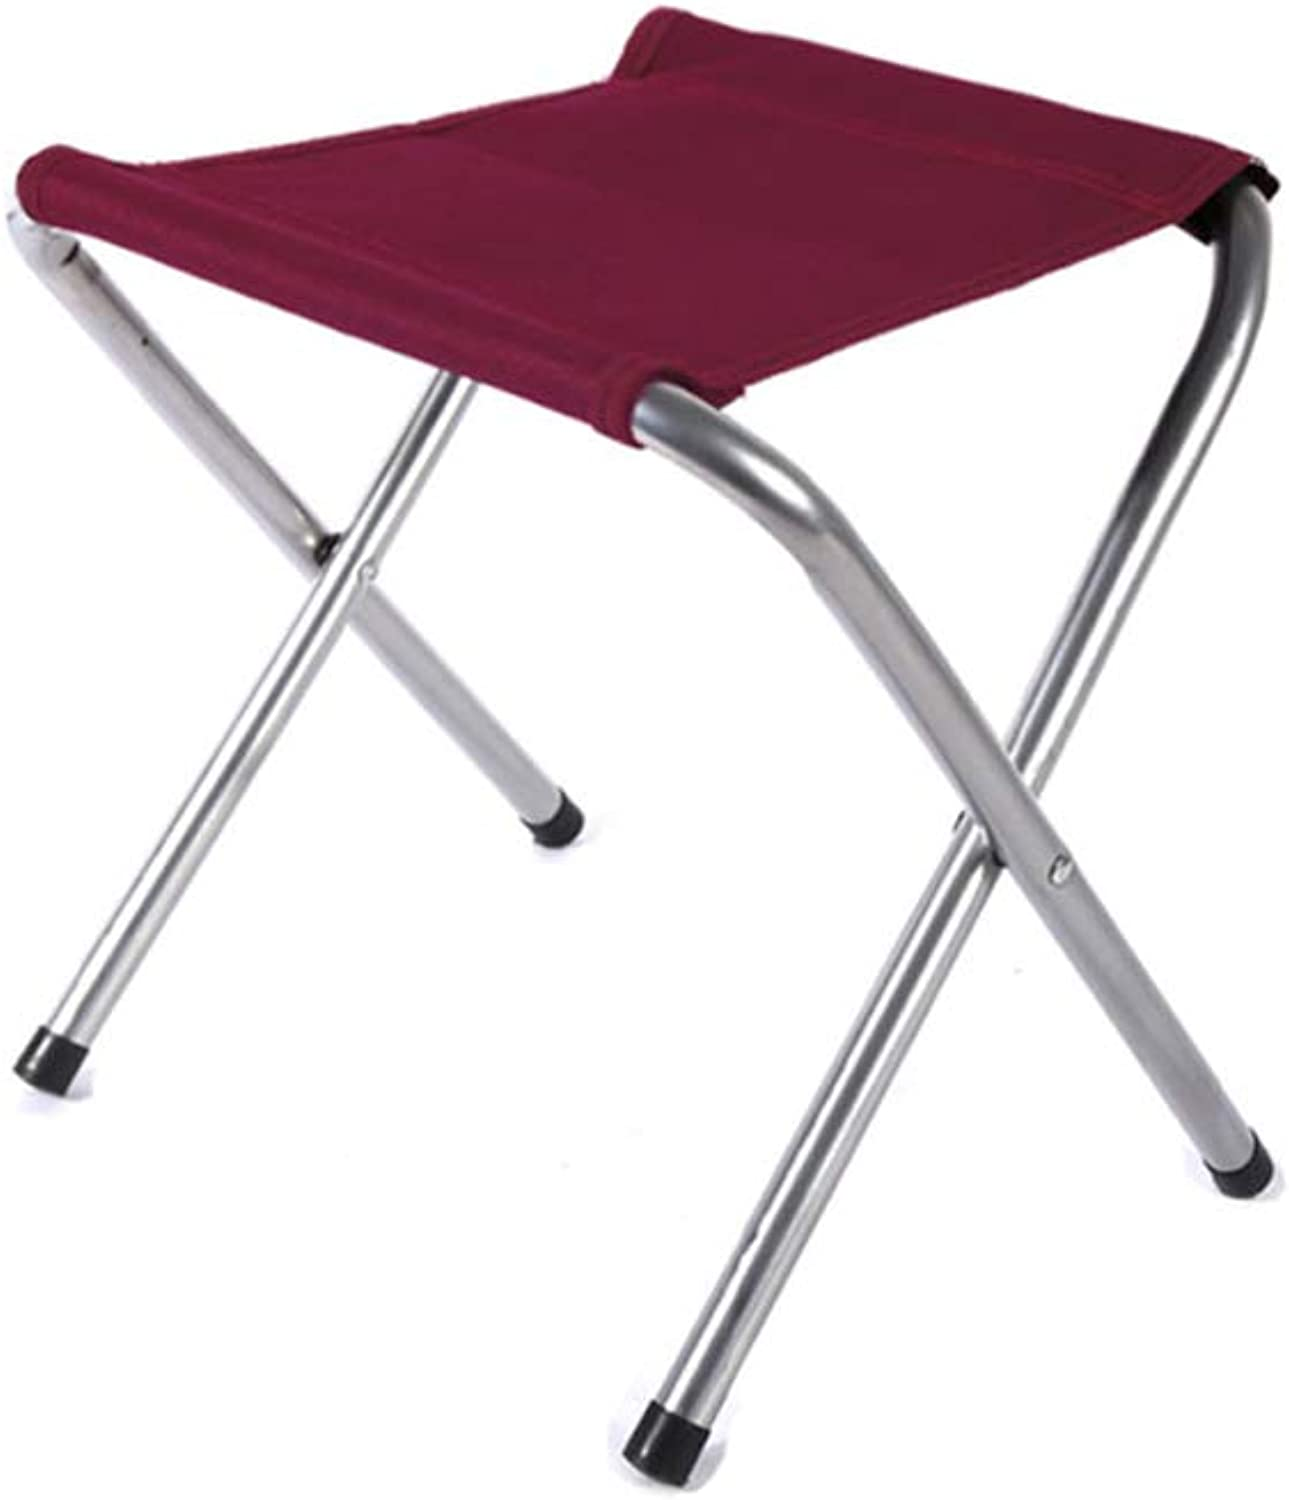 Mazar Folding Stool Outdoor Portable Leisure Fishing Chair Stool Red